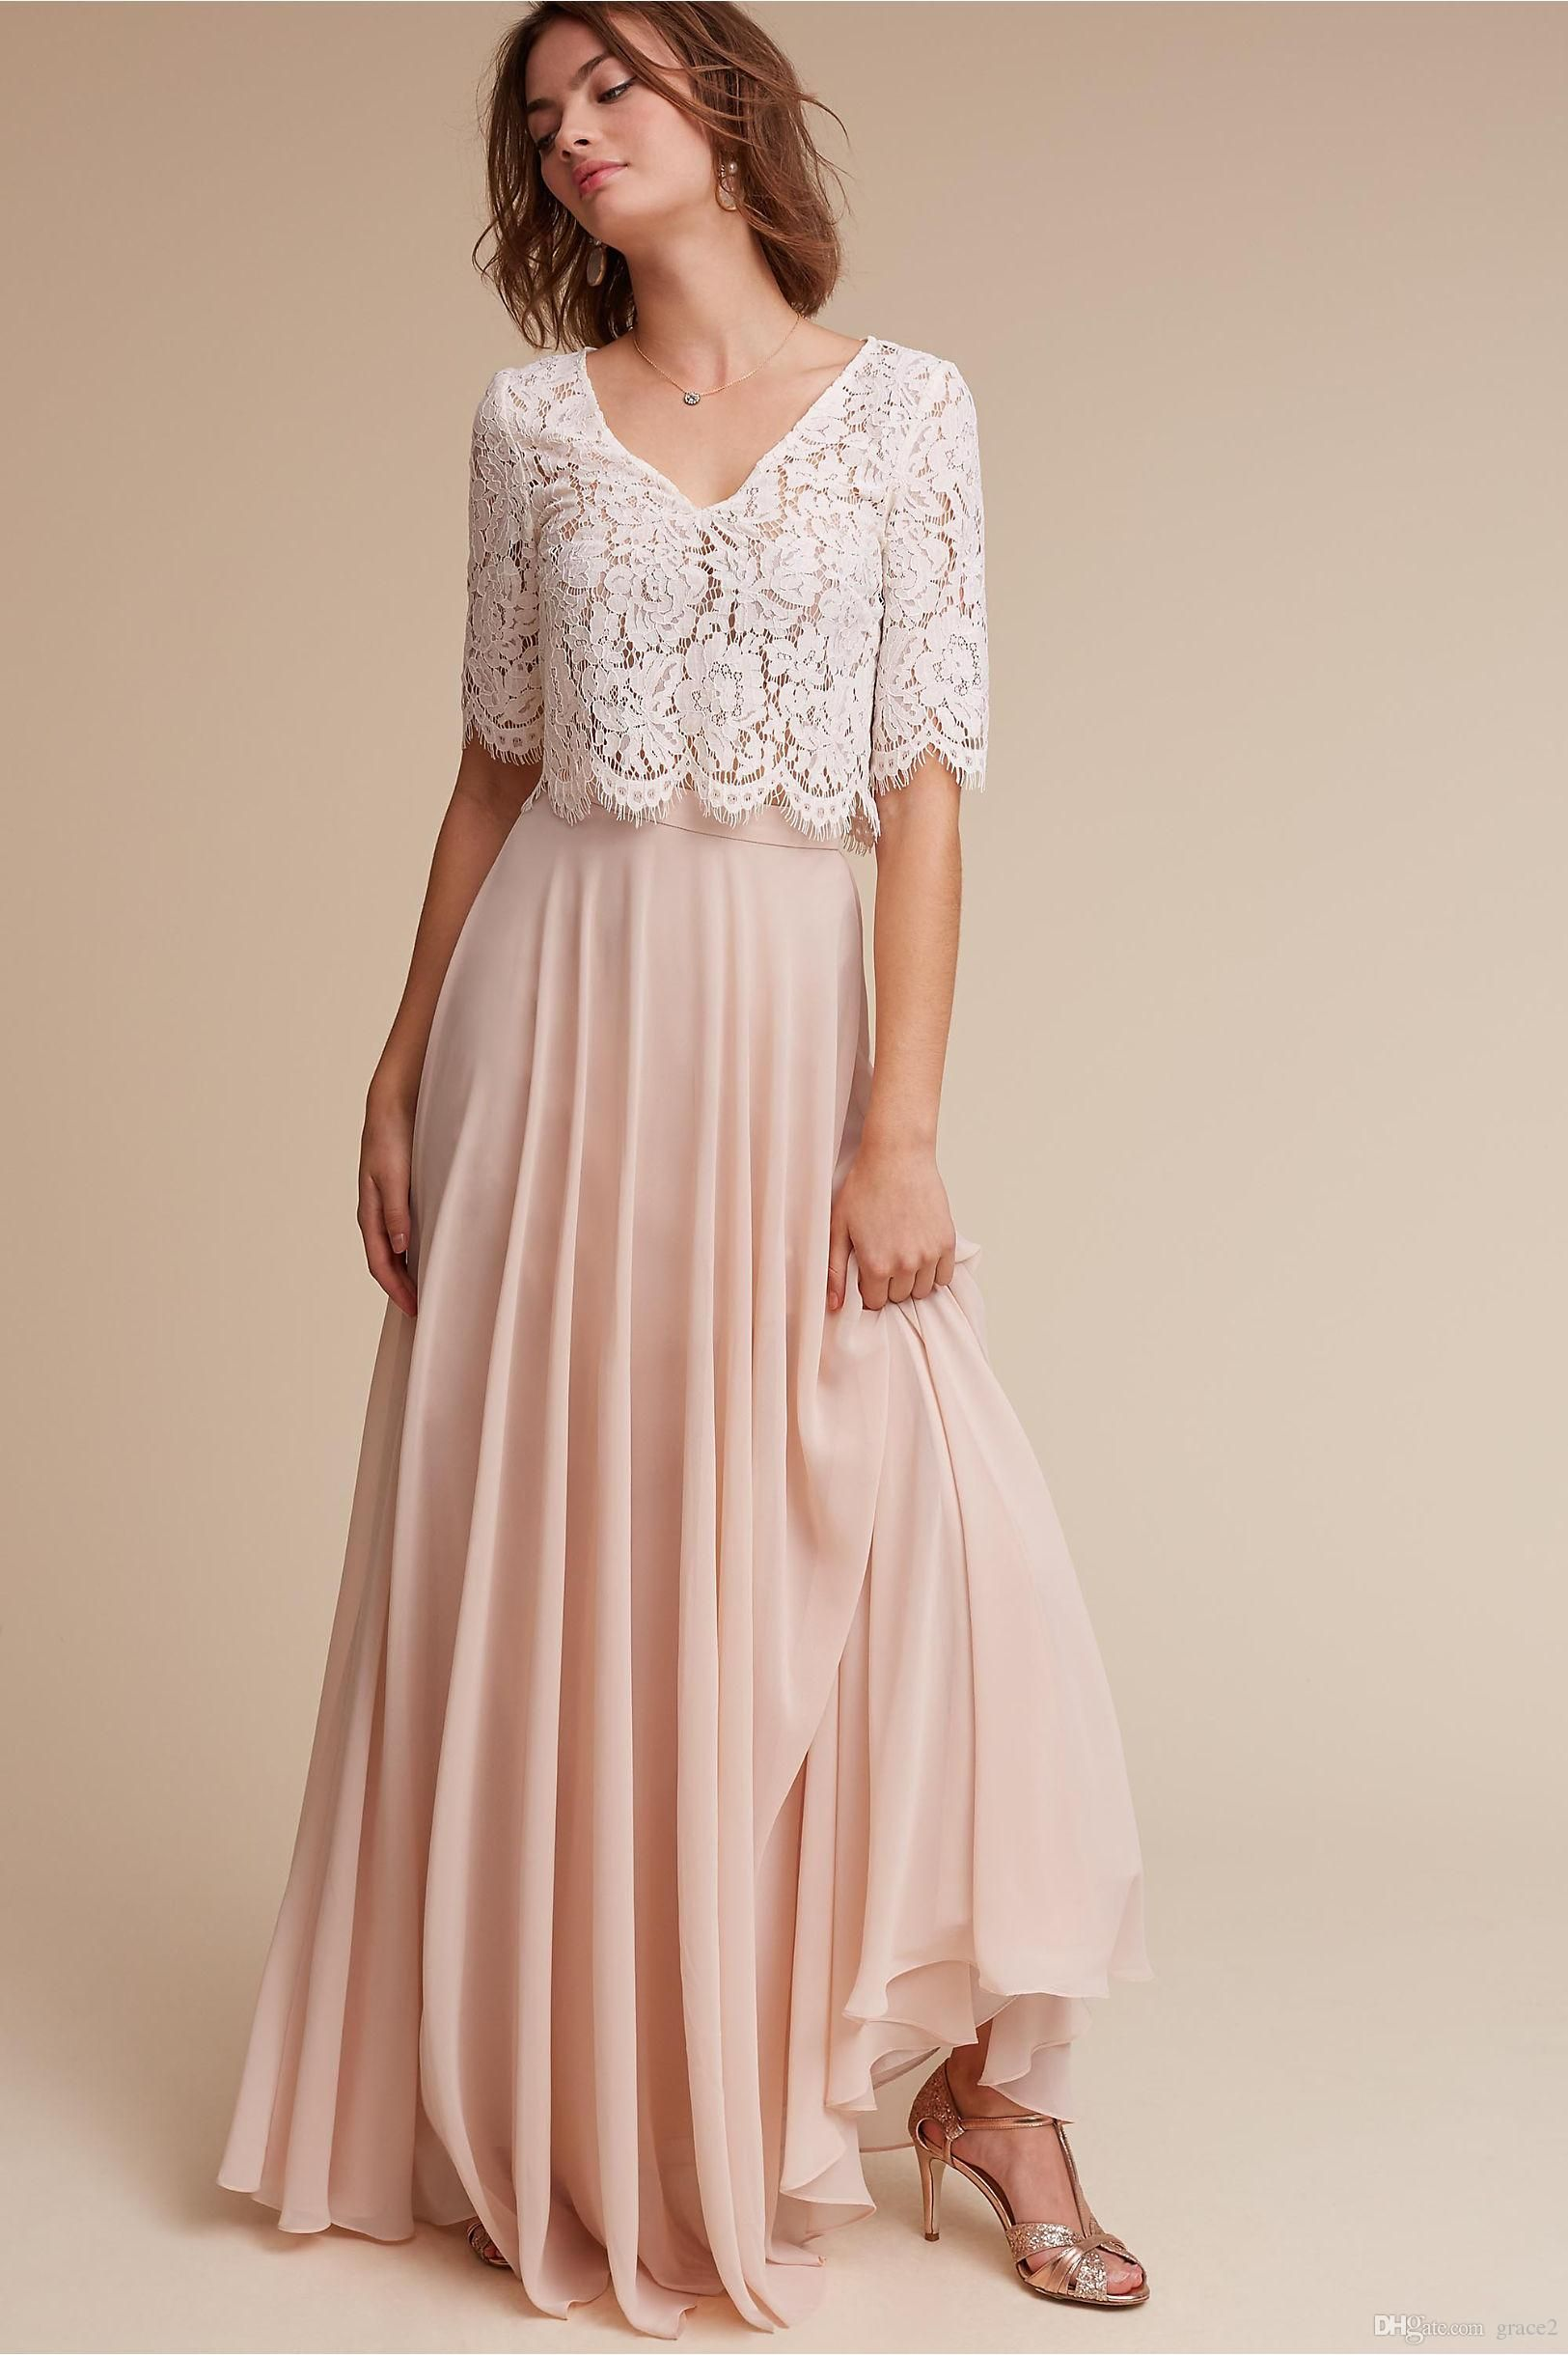 Lace u chiffon bridesmaid dresses bhldn under with half